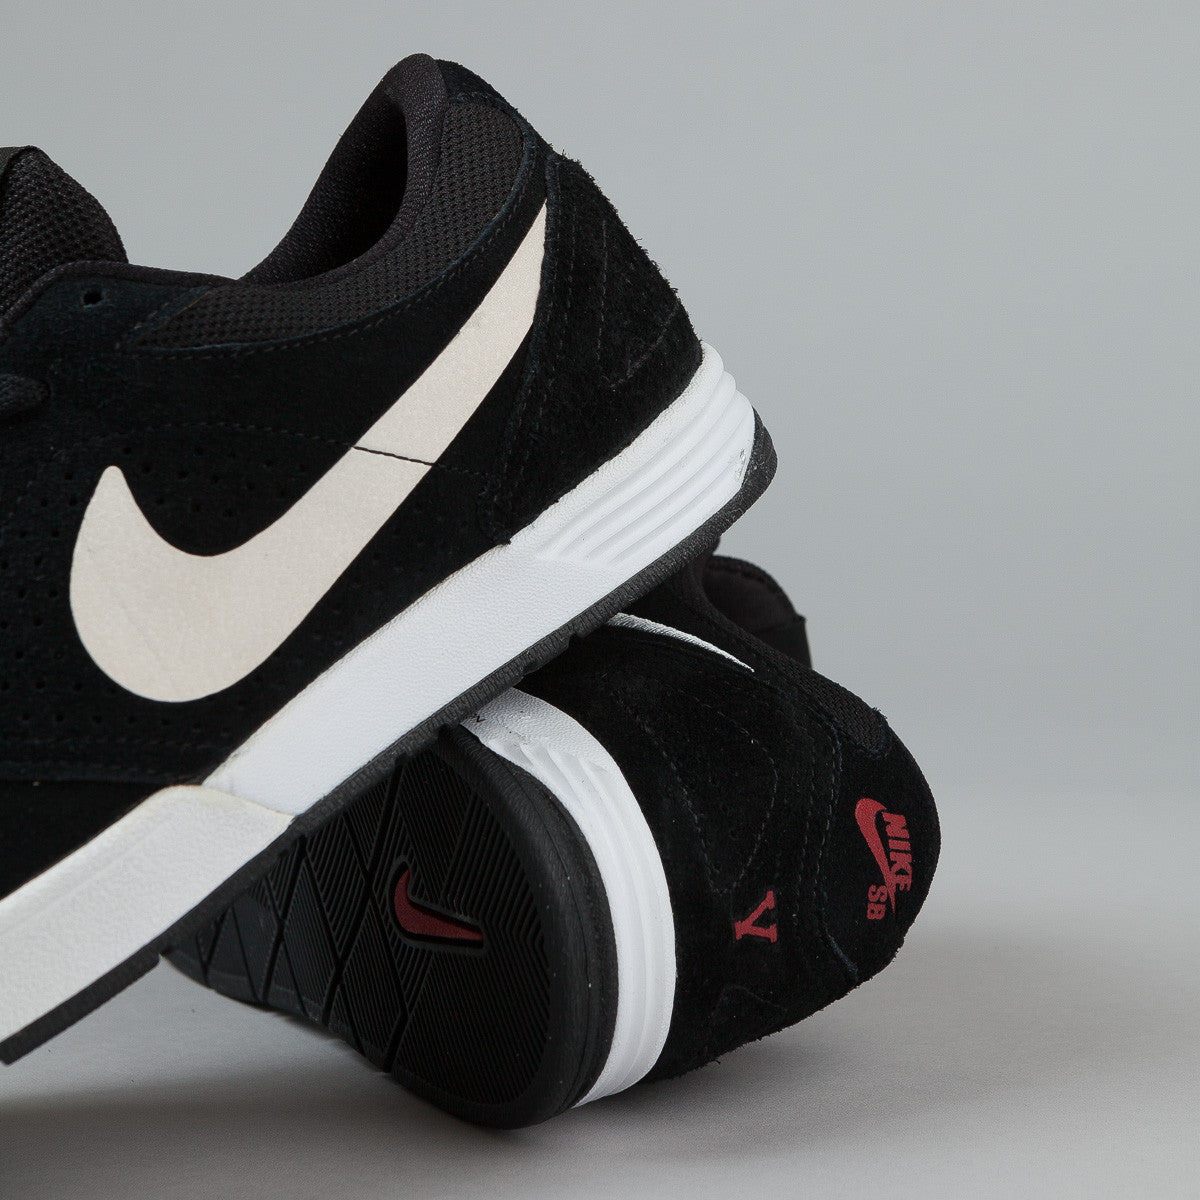 Nike SB Paul Rodriguez 5 Shoes - Black / White - Varsity Red